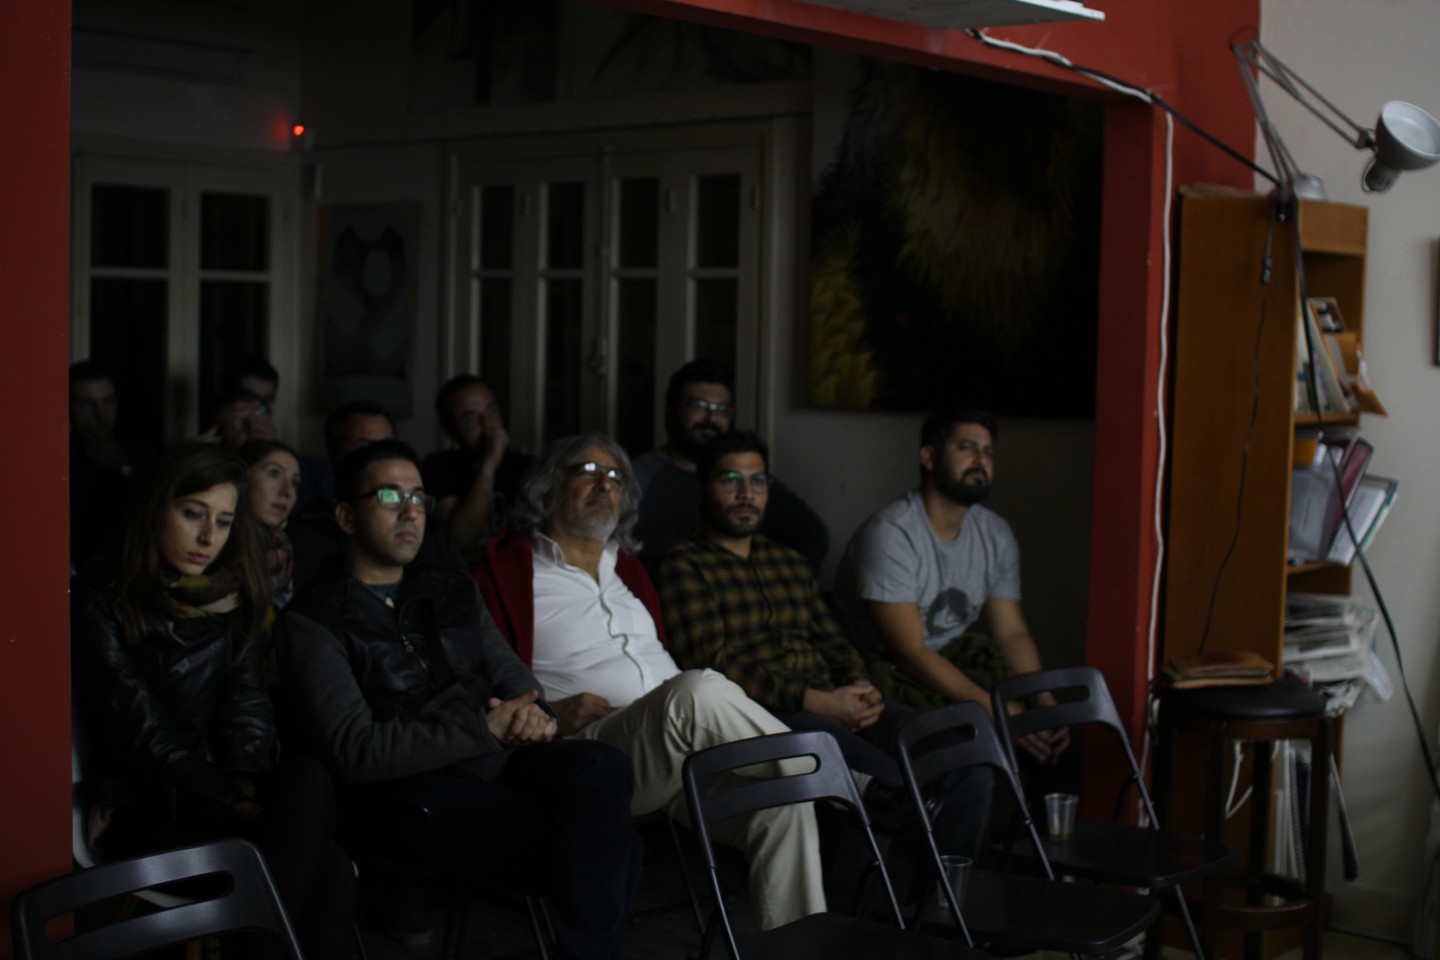 """Screening of Giorgos Nikopoulos' film """"The Ox"""". The director was present at screening and spoke briefly about his creative process. A discussion followed with the audience."""